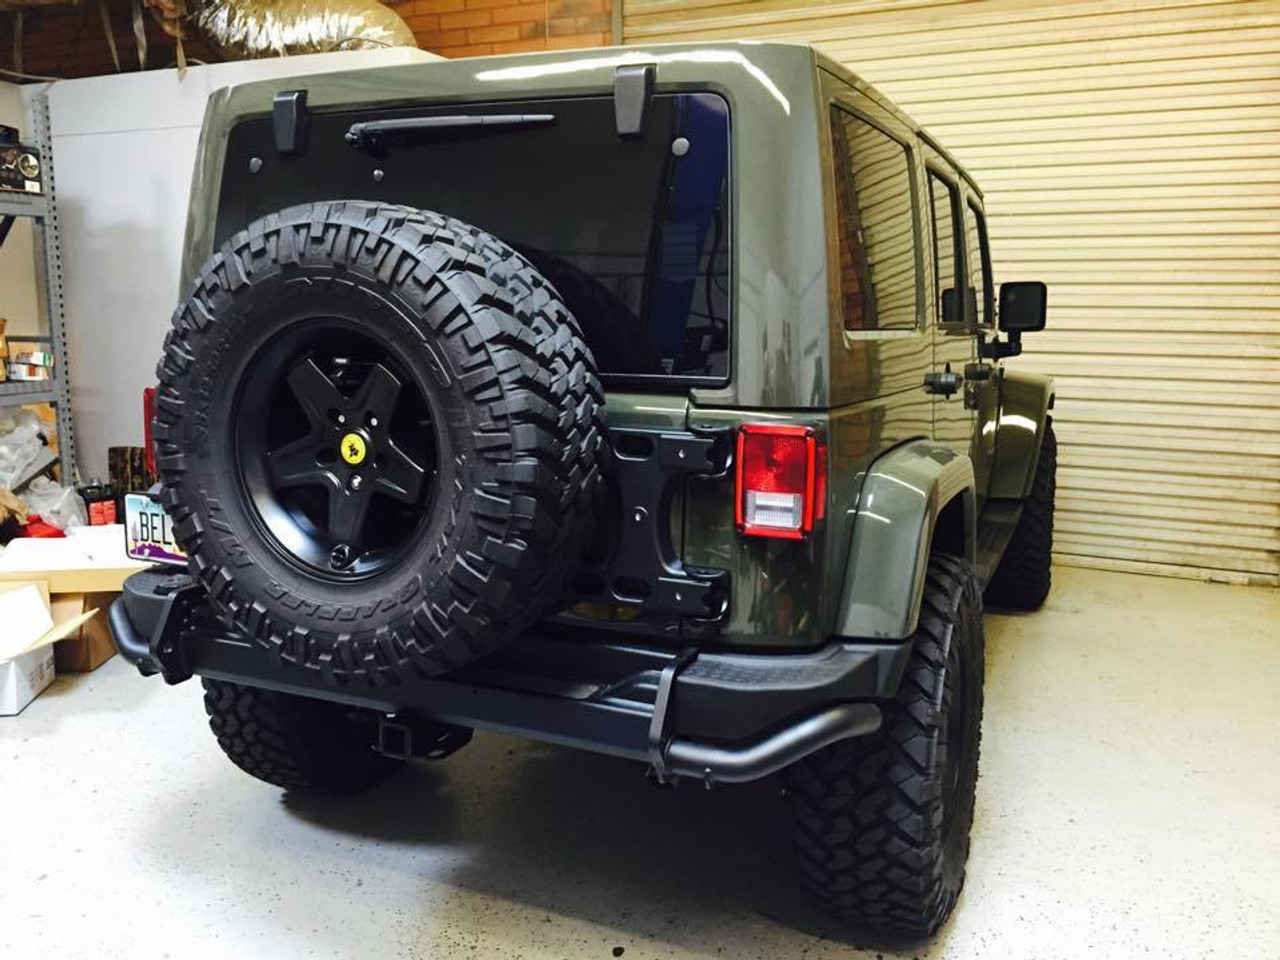 TeraFlex HD Hinged Spare Tire Carrier Mounted on Jeep Wrangler JK